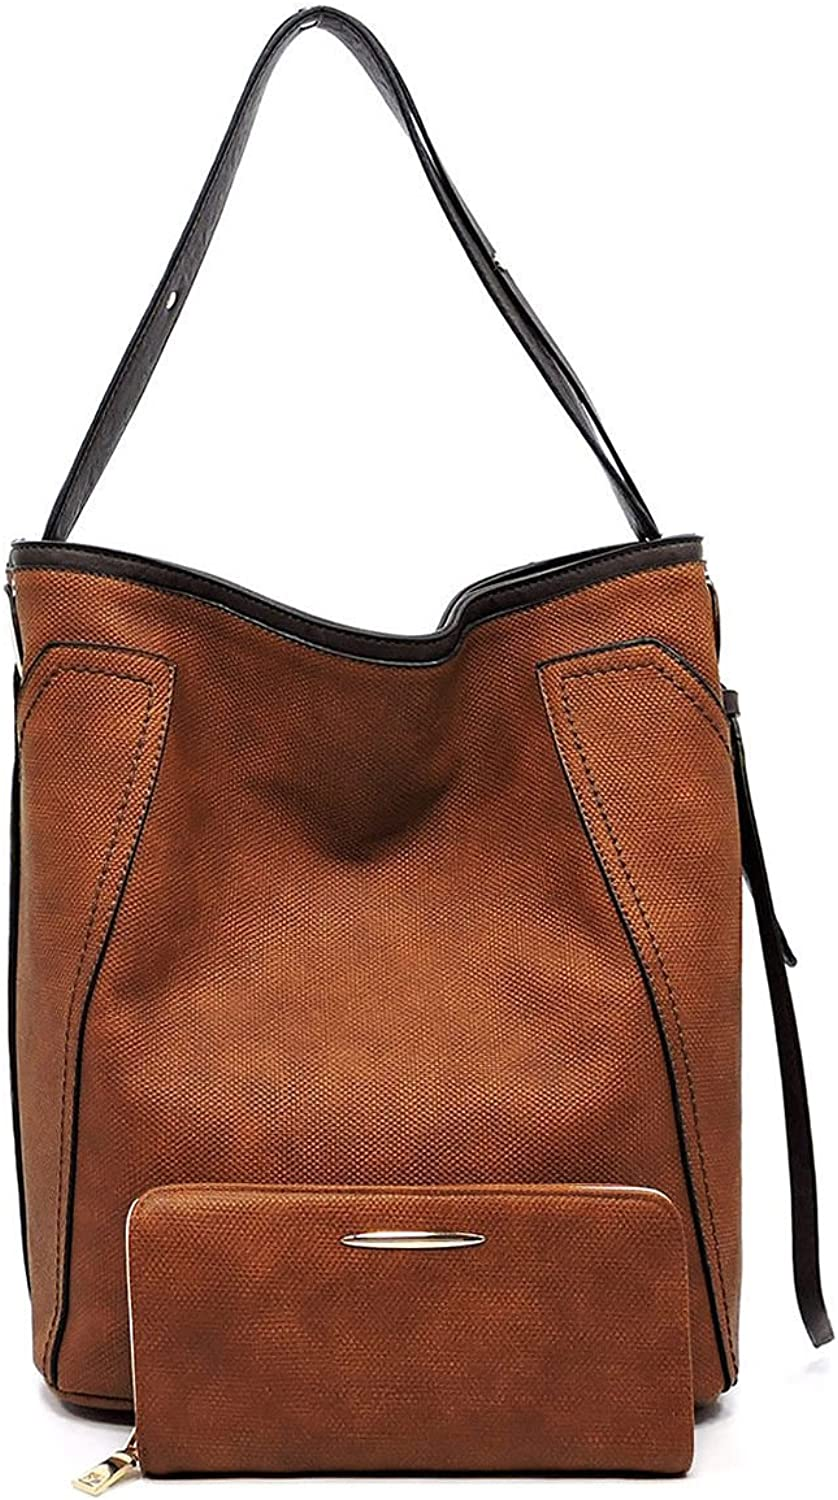 New  Le Miel Textured Zip Bucket Tote w Strap + Wallet Brown